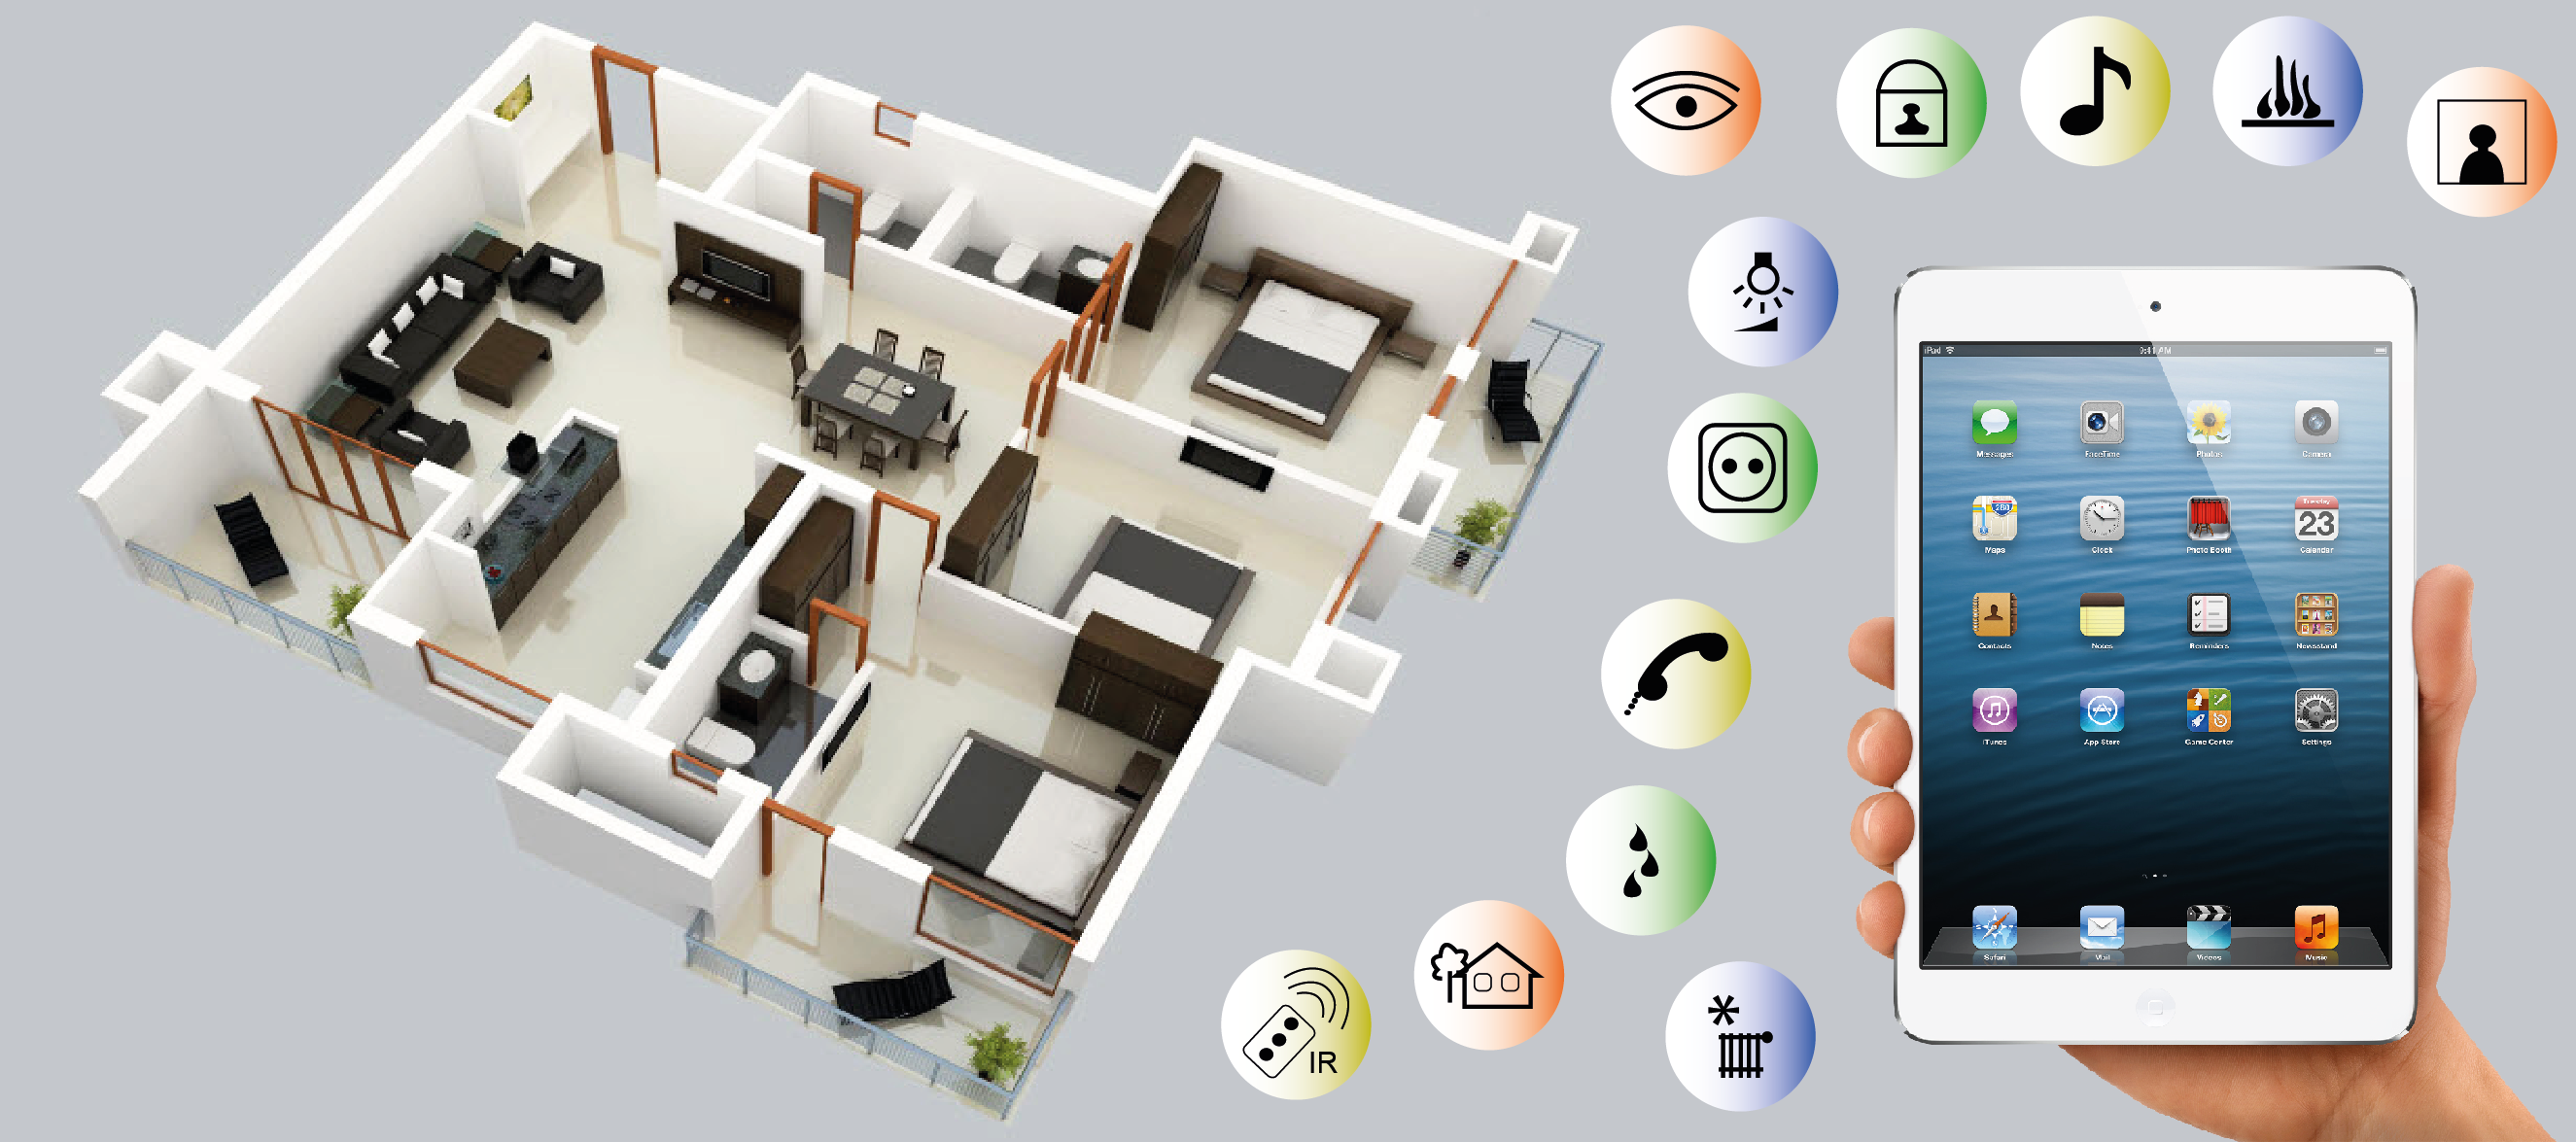 Home automation research and development are booming.